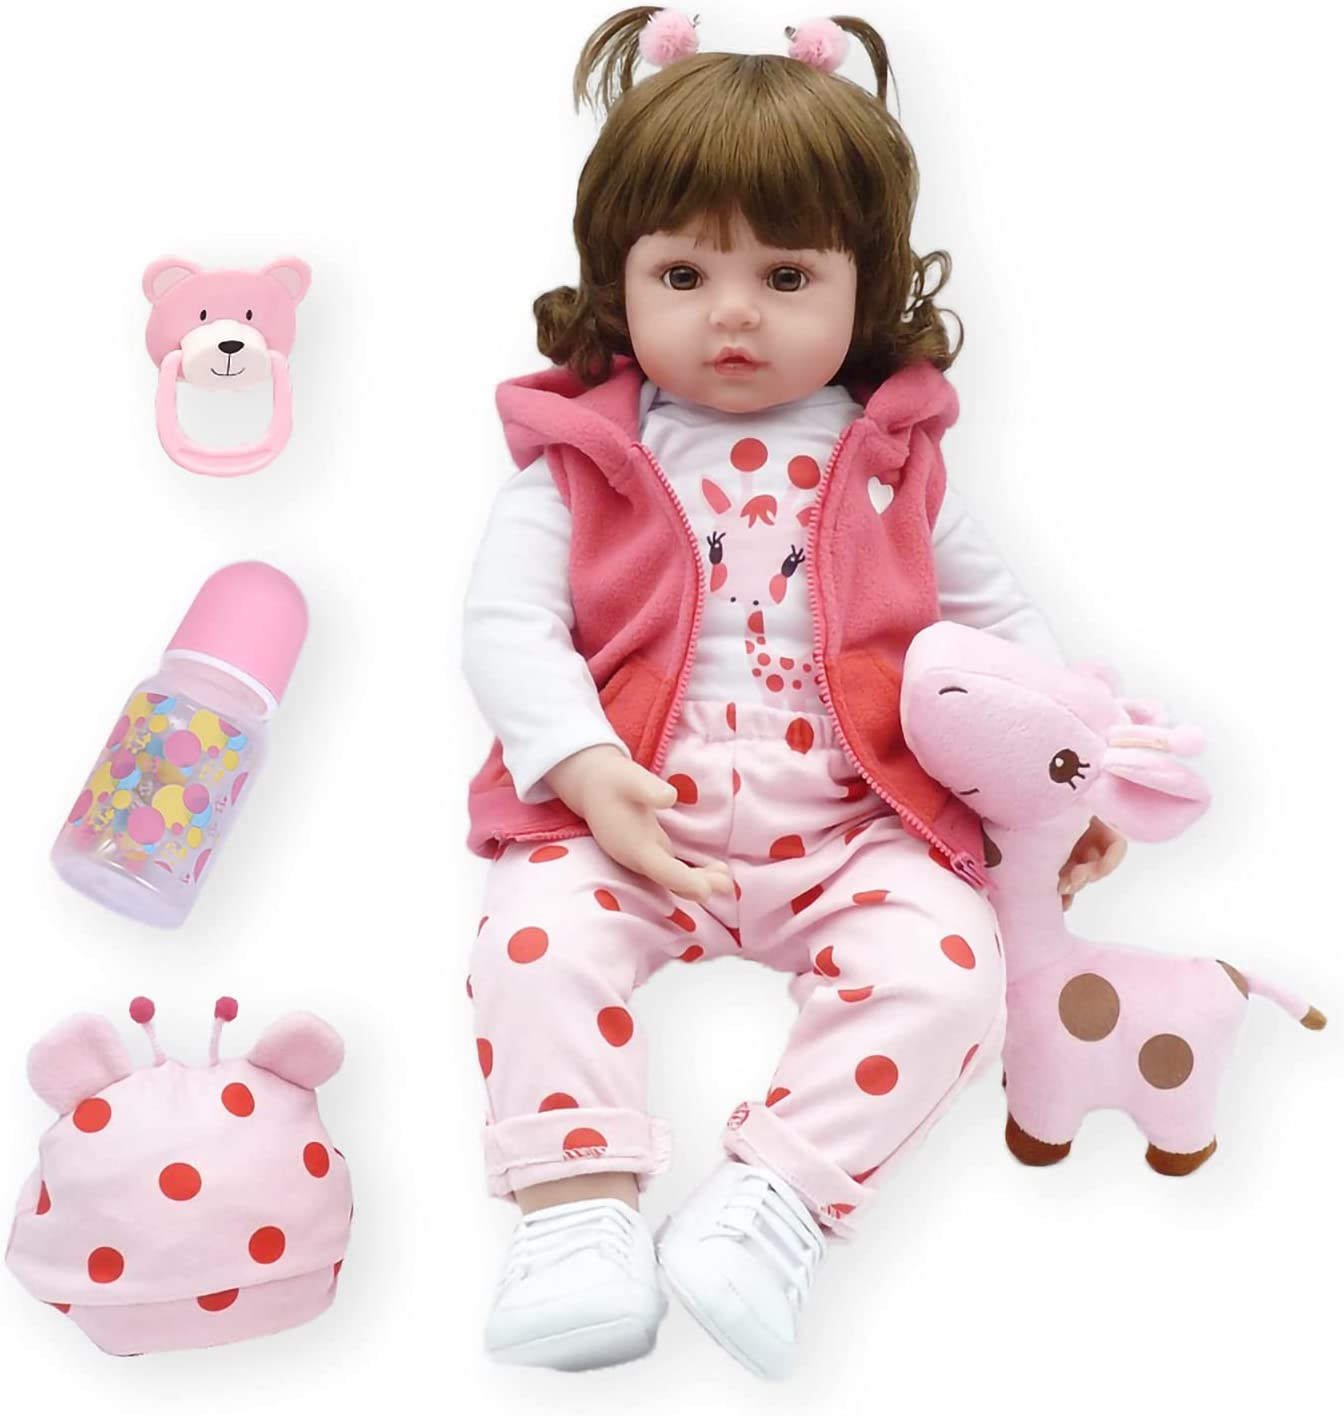 APCHY Reborn Baby Doll 25% OFF 19 Soft Max 75% OFF inch Silicone Toddler